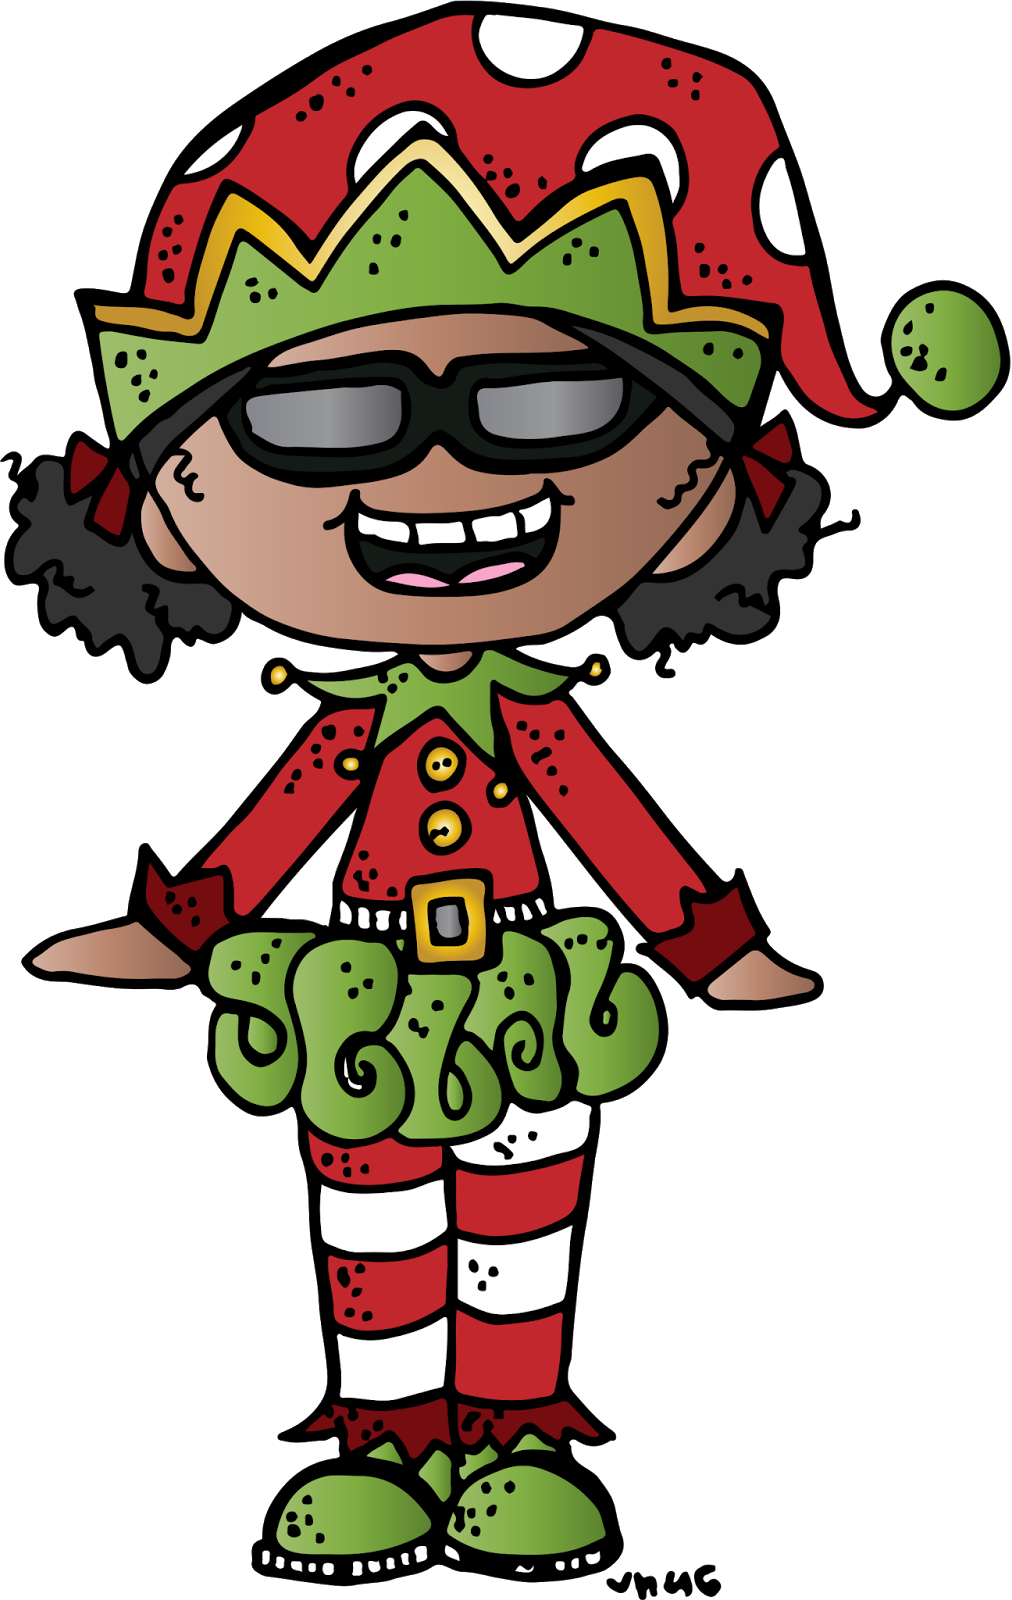 Elf clipart melonheadz. Giving tuesday winners have